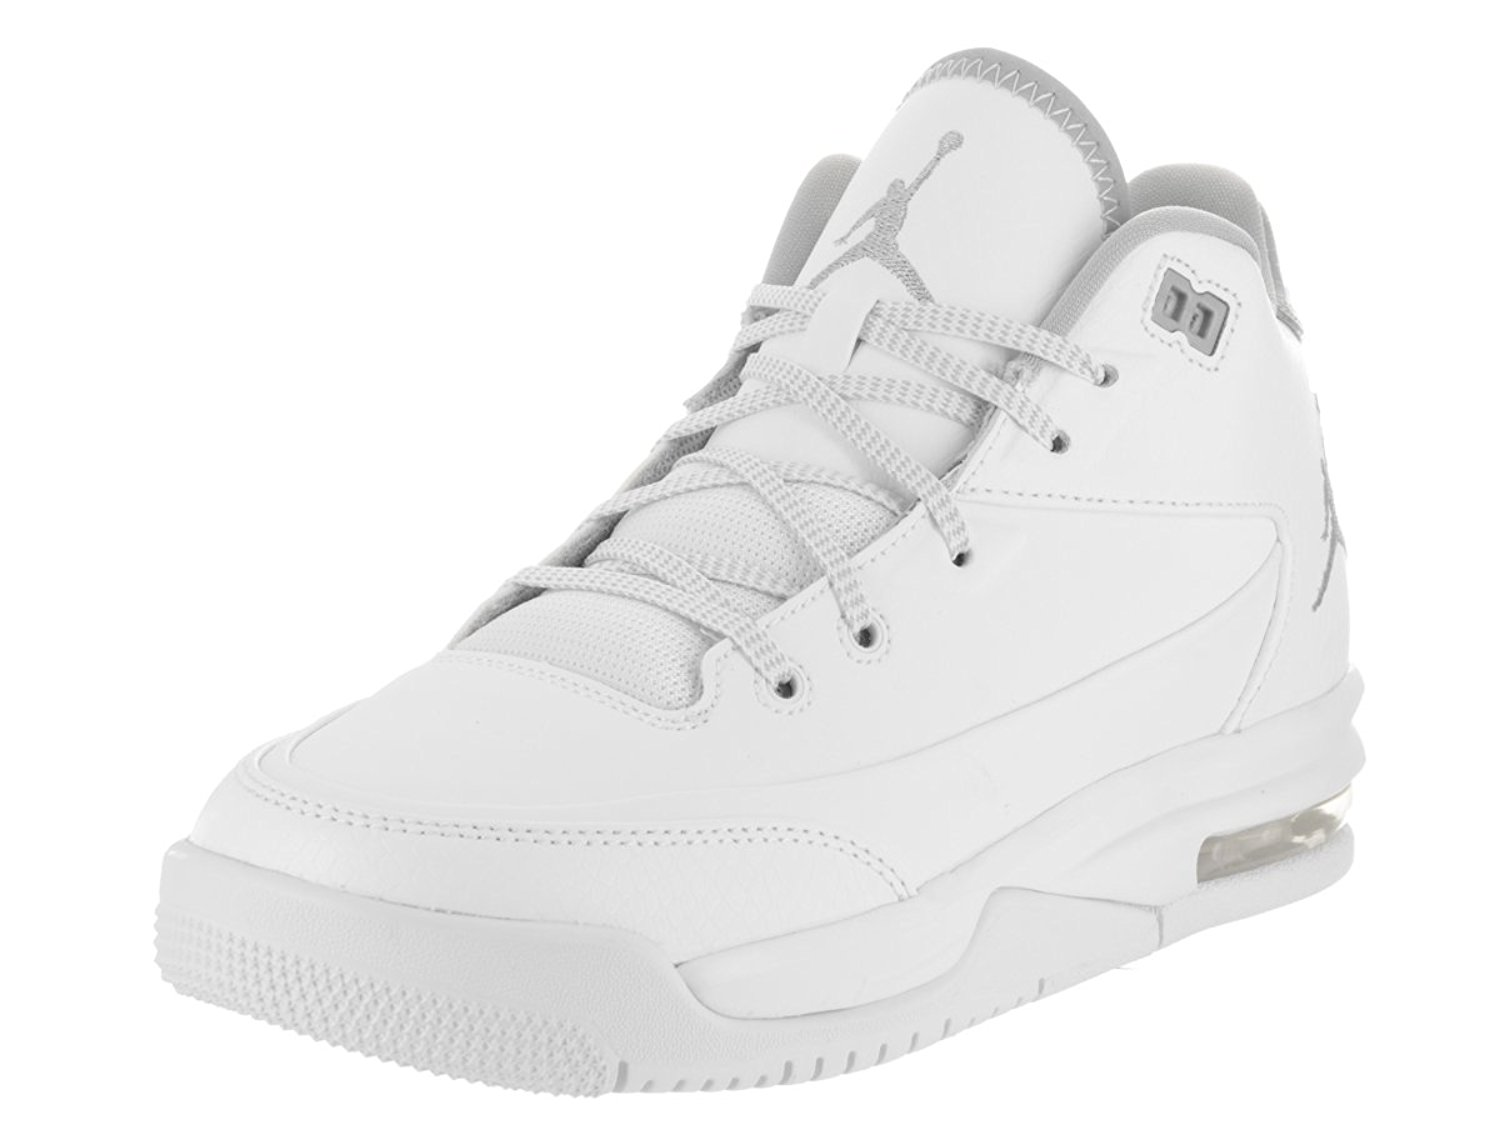 competitive price 8a65a 1946a Get Quotations · Jordan Flight Origin 3 White Metallic Silver-White (Big Kid),  6.5